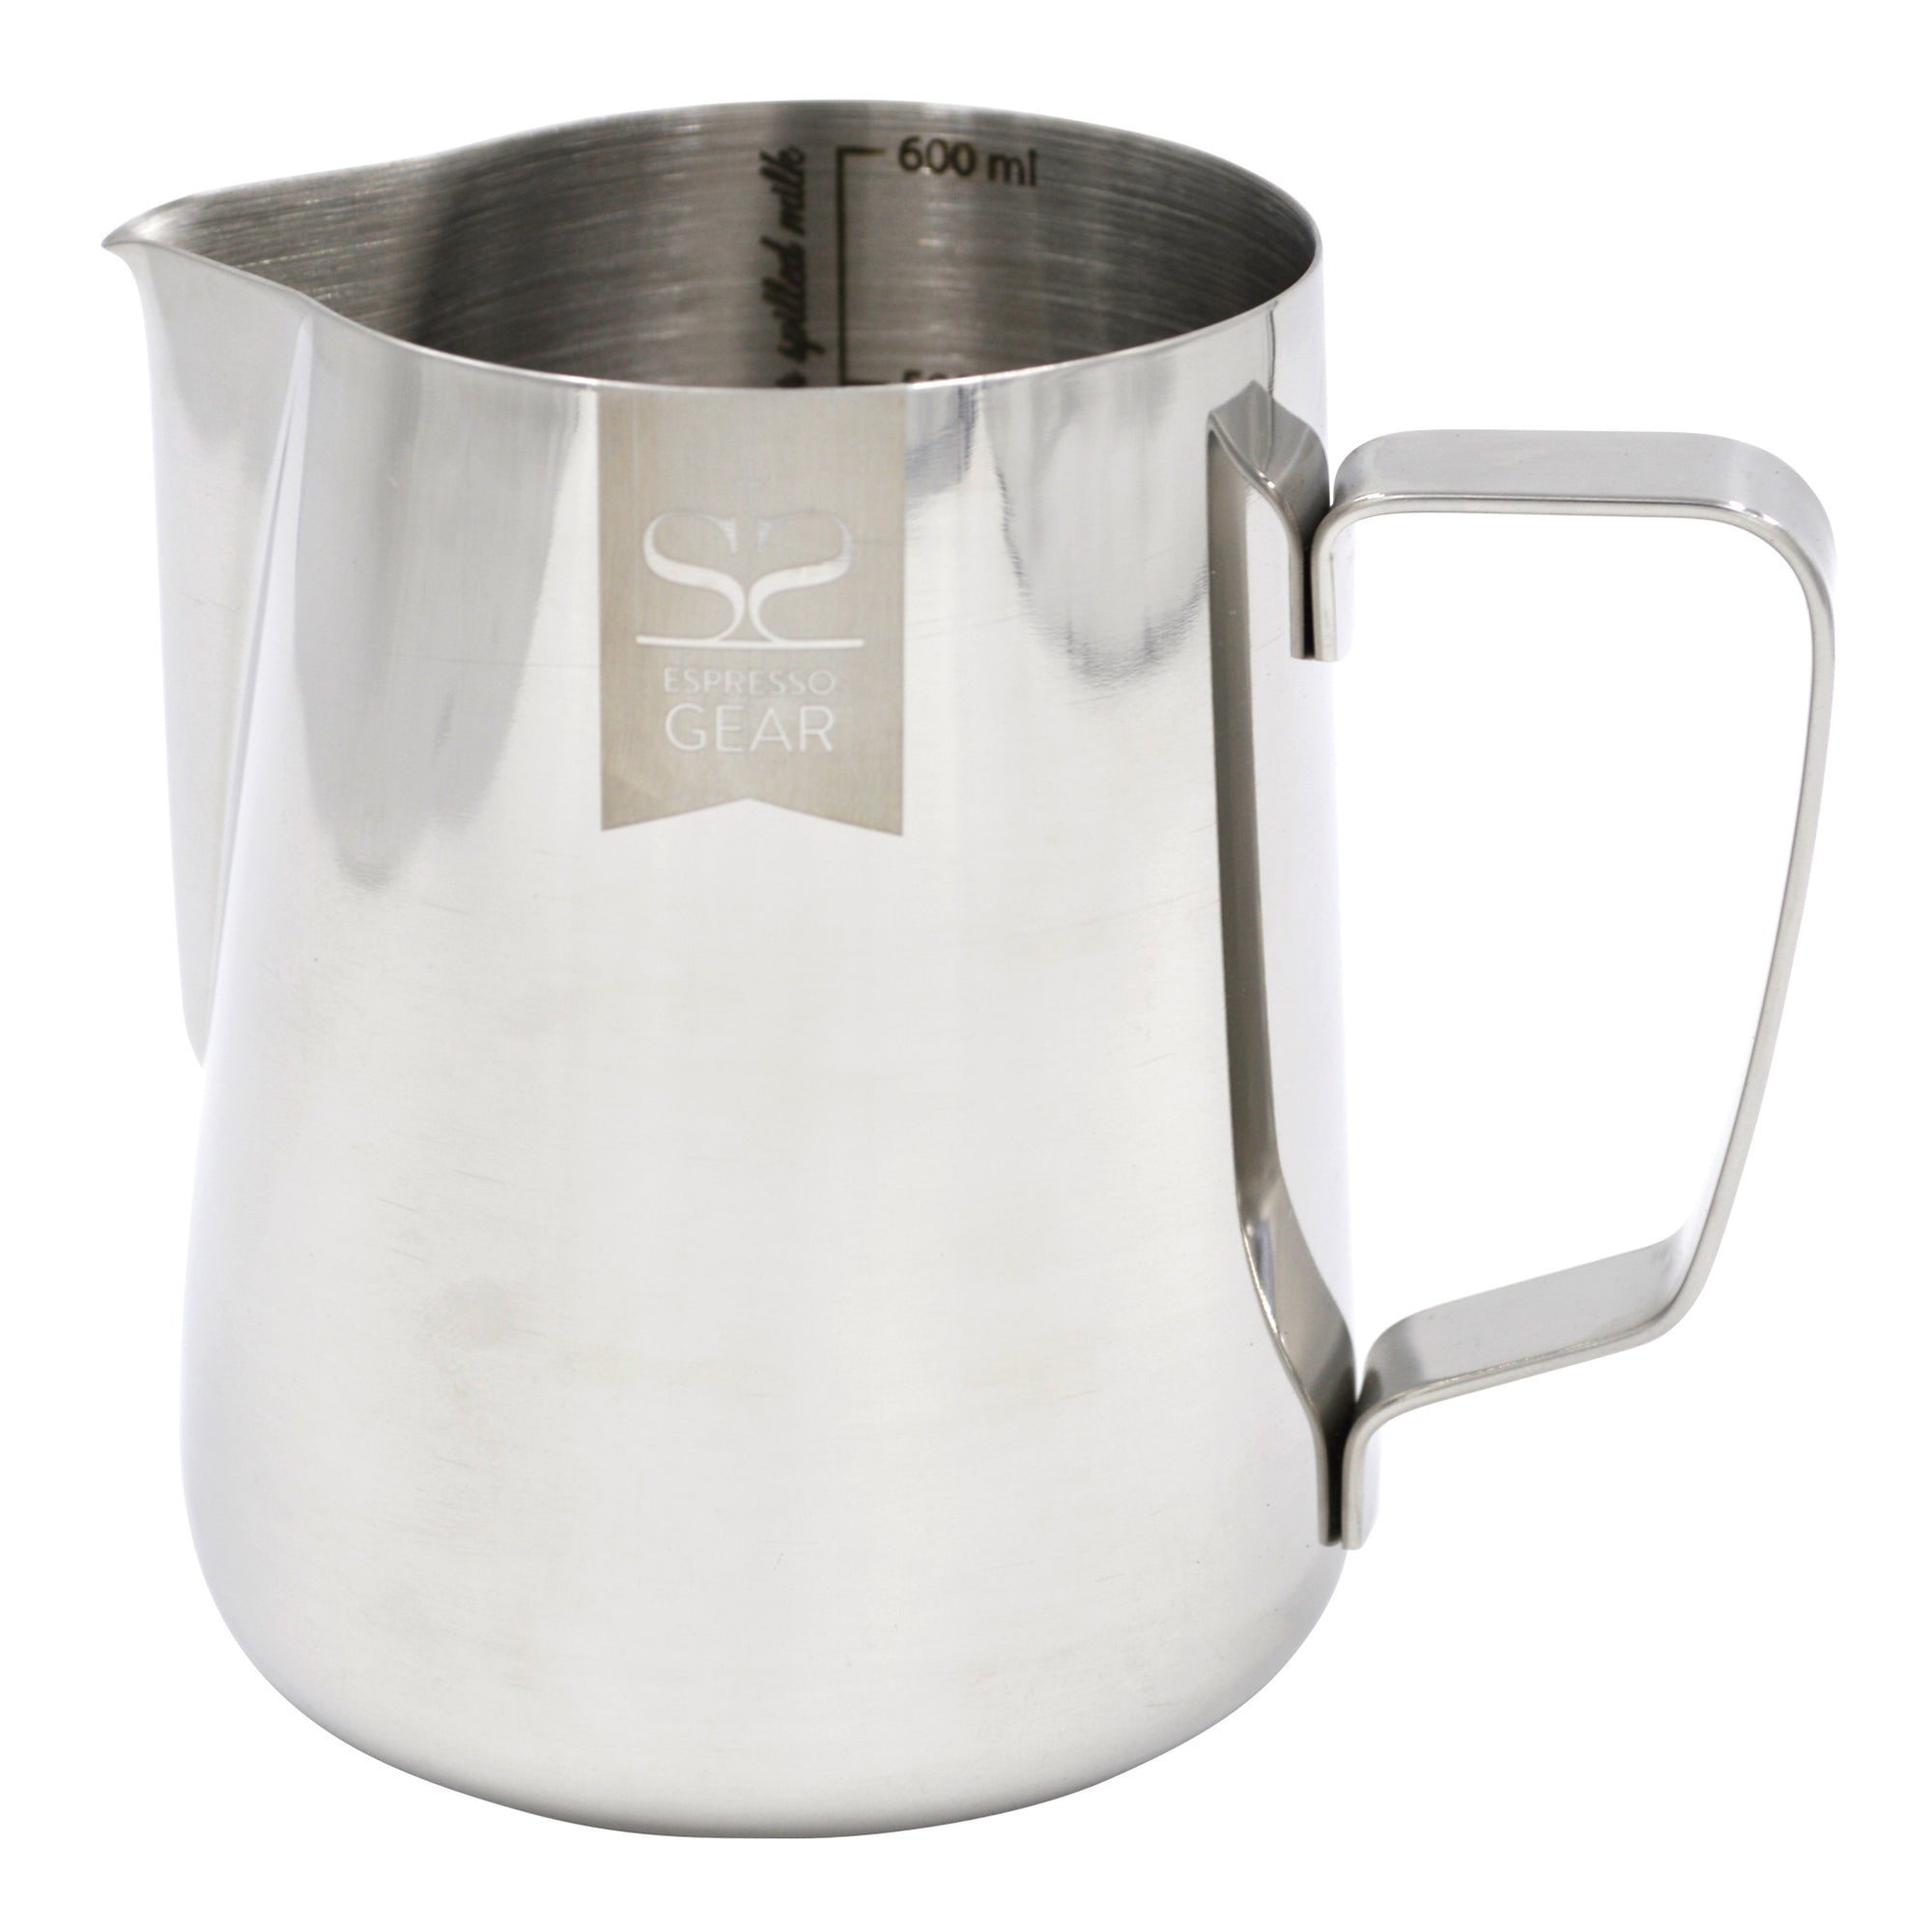 Pitcher Classic 600ml w/ measuring line - Espresso Gear - Espresso Gear